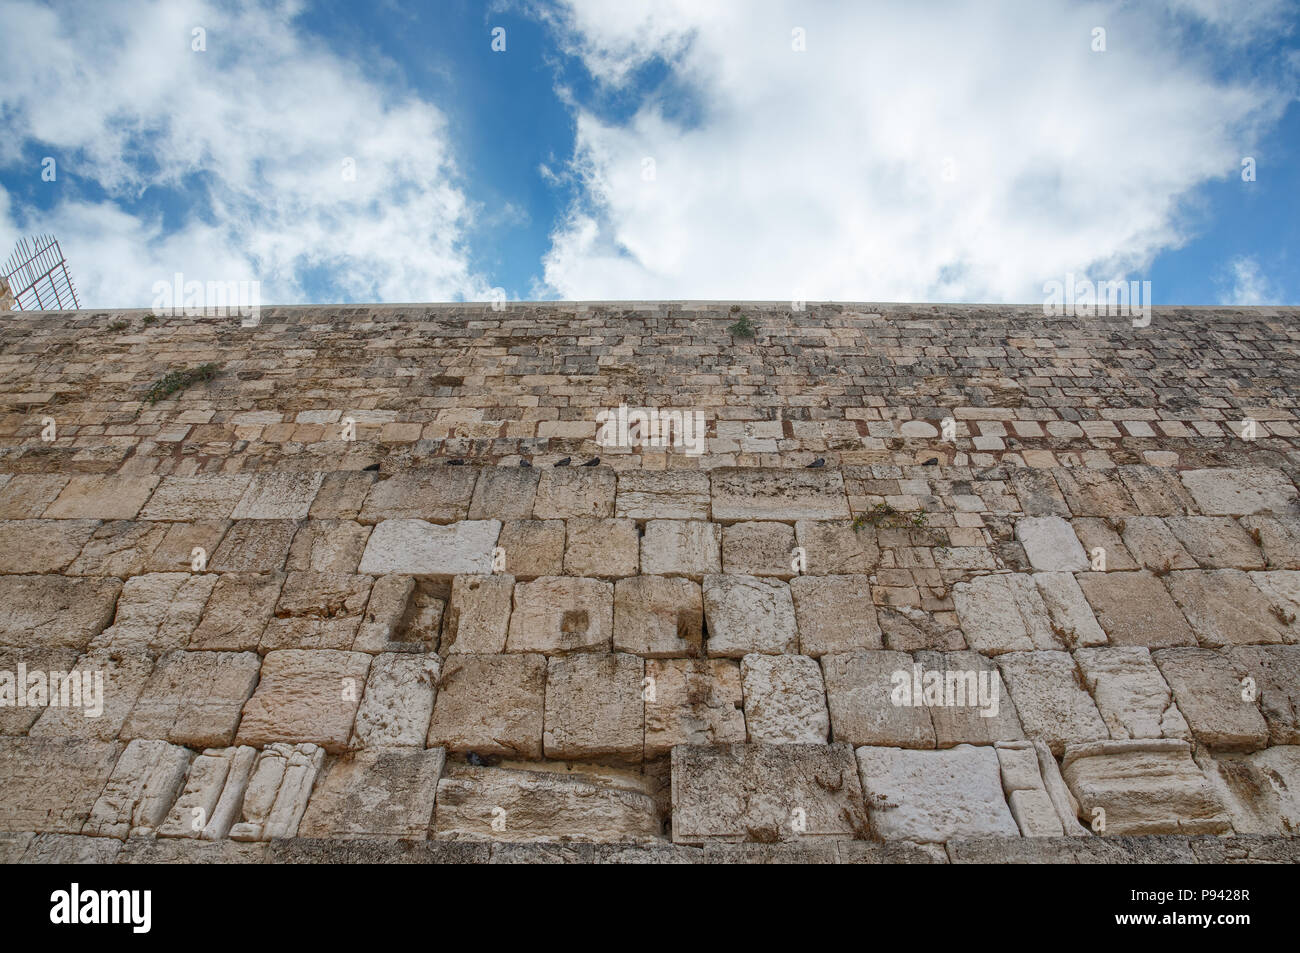 Western Wall ashlar stones during a summer cloudy morning. - Stock Image